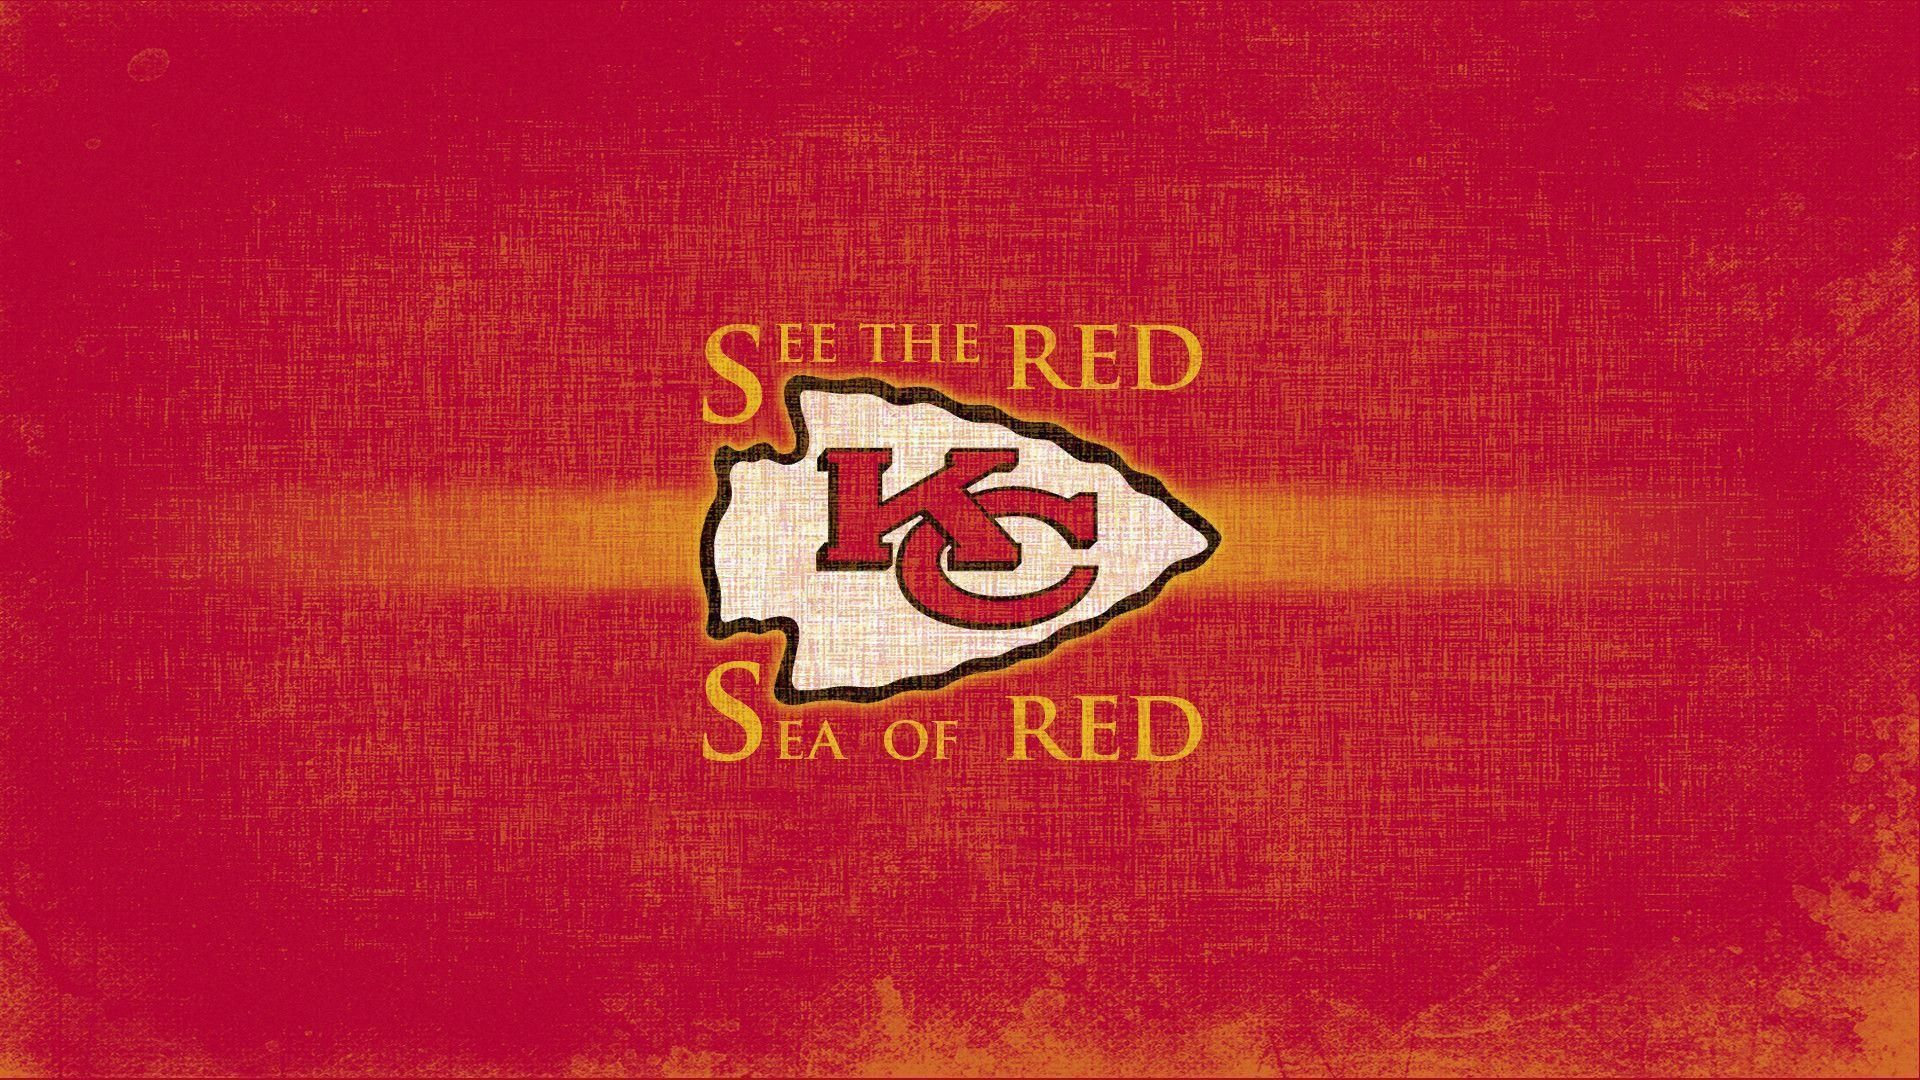 Sports Kansas City Chiefs American Football Team Hd Wallpaper In 2020 Kansas City Chiefs Logo Kansas City Chiefs Chiefs Wallpaper